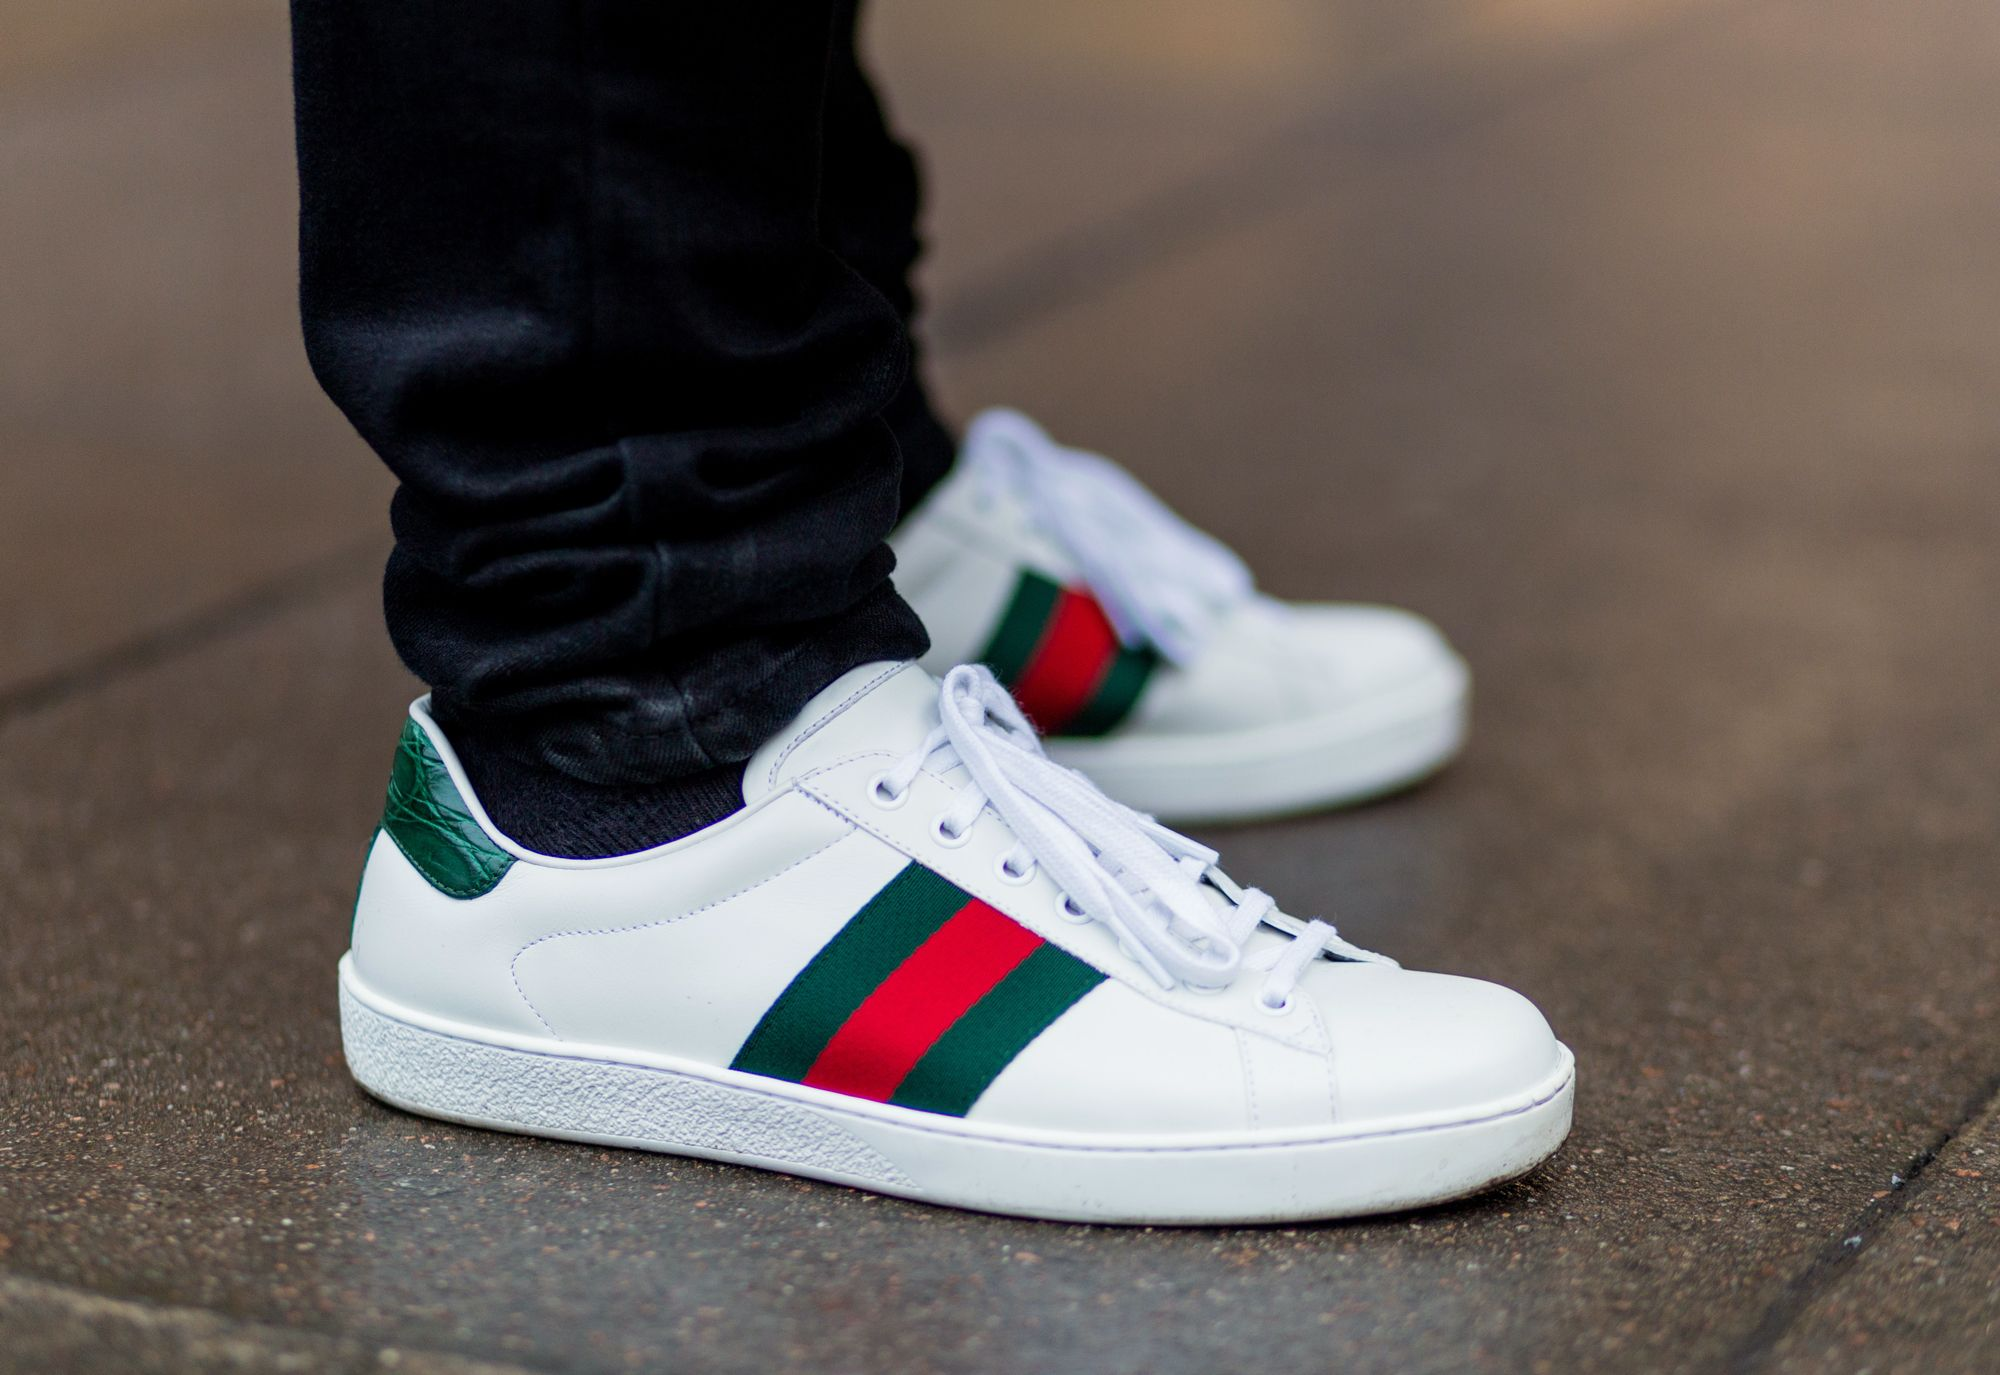 c3de2c6c8bb Gucci s Most Affordable Sneakers Can Now Be Personalized With Your Initials